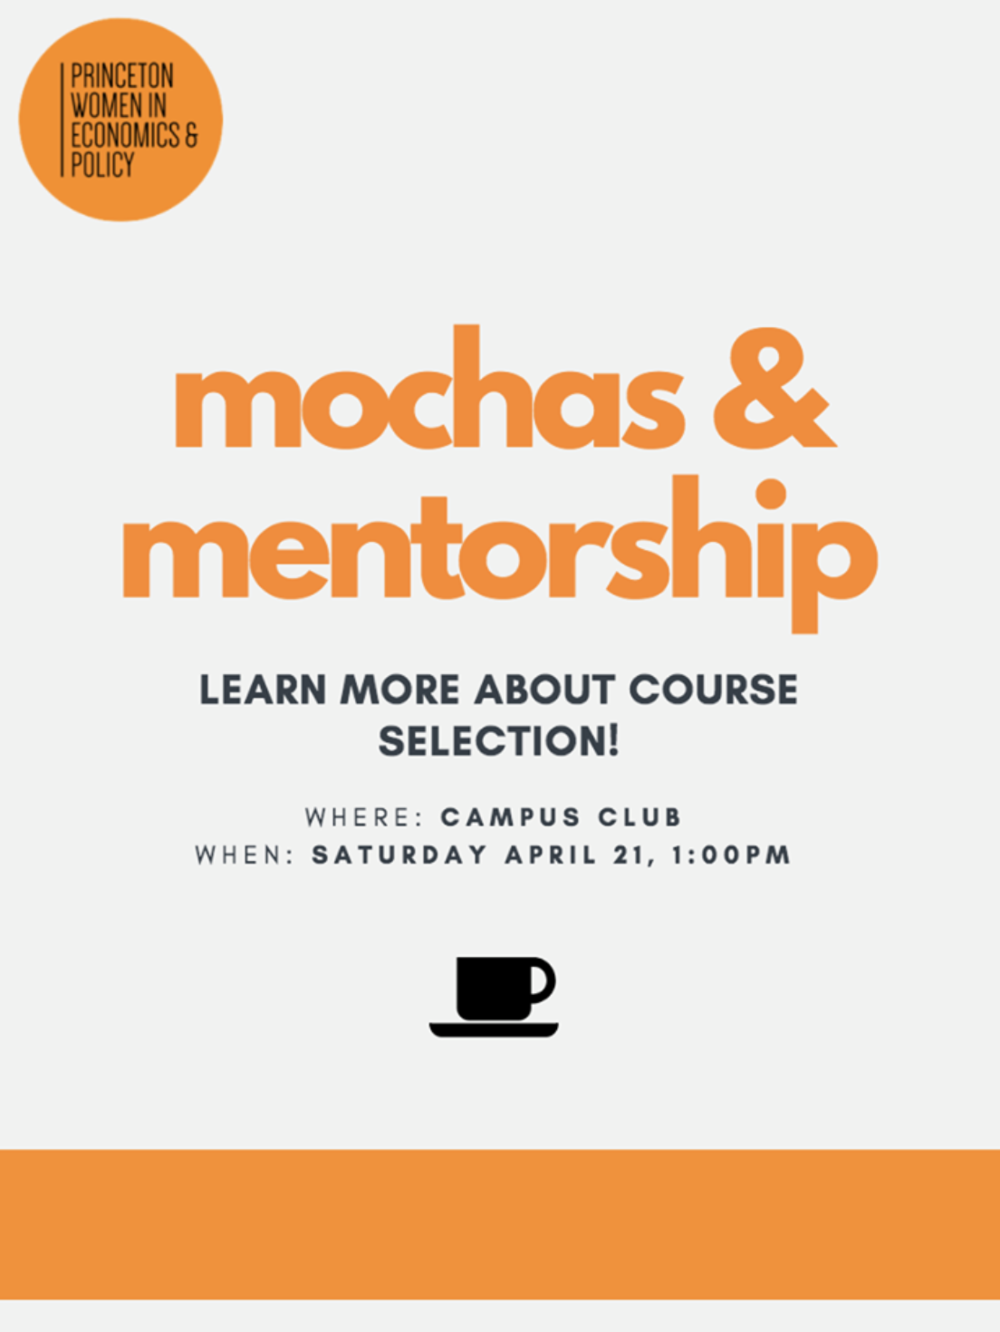 Mochas & Mentorship - Princeton Women in Economics & Policy is excited to invite you to our Mochas & Mentorship event on course selection this Saturday, April 21st! Come by to Campus Club at 1pm to ask questions about which courses to take next year, how to plan your major, or any other guidance about the Economics, Woodrow Wilson, History, or Politics department. There will be Dunkin' Donuts coffee and donuts so come by for mentorship and treats!